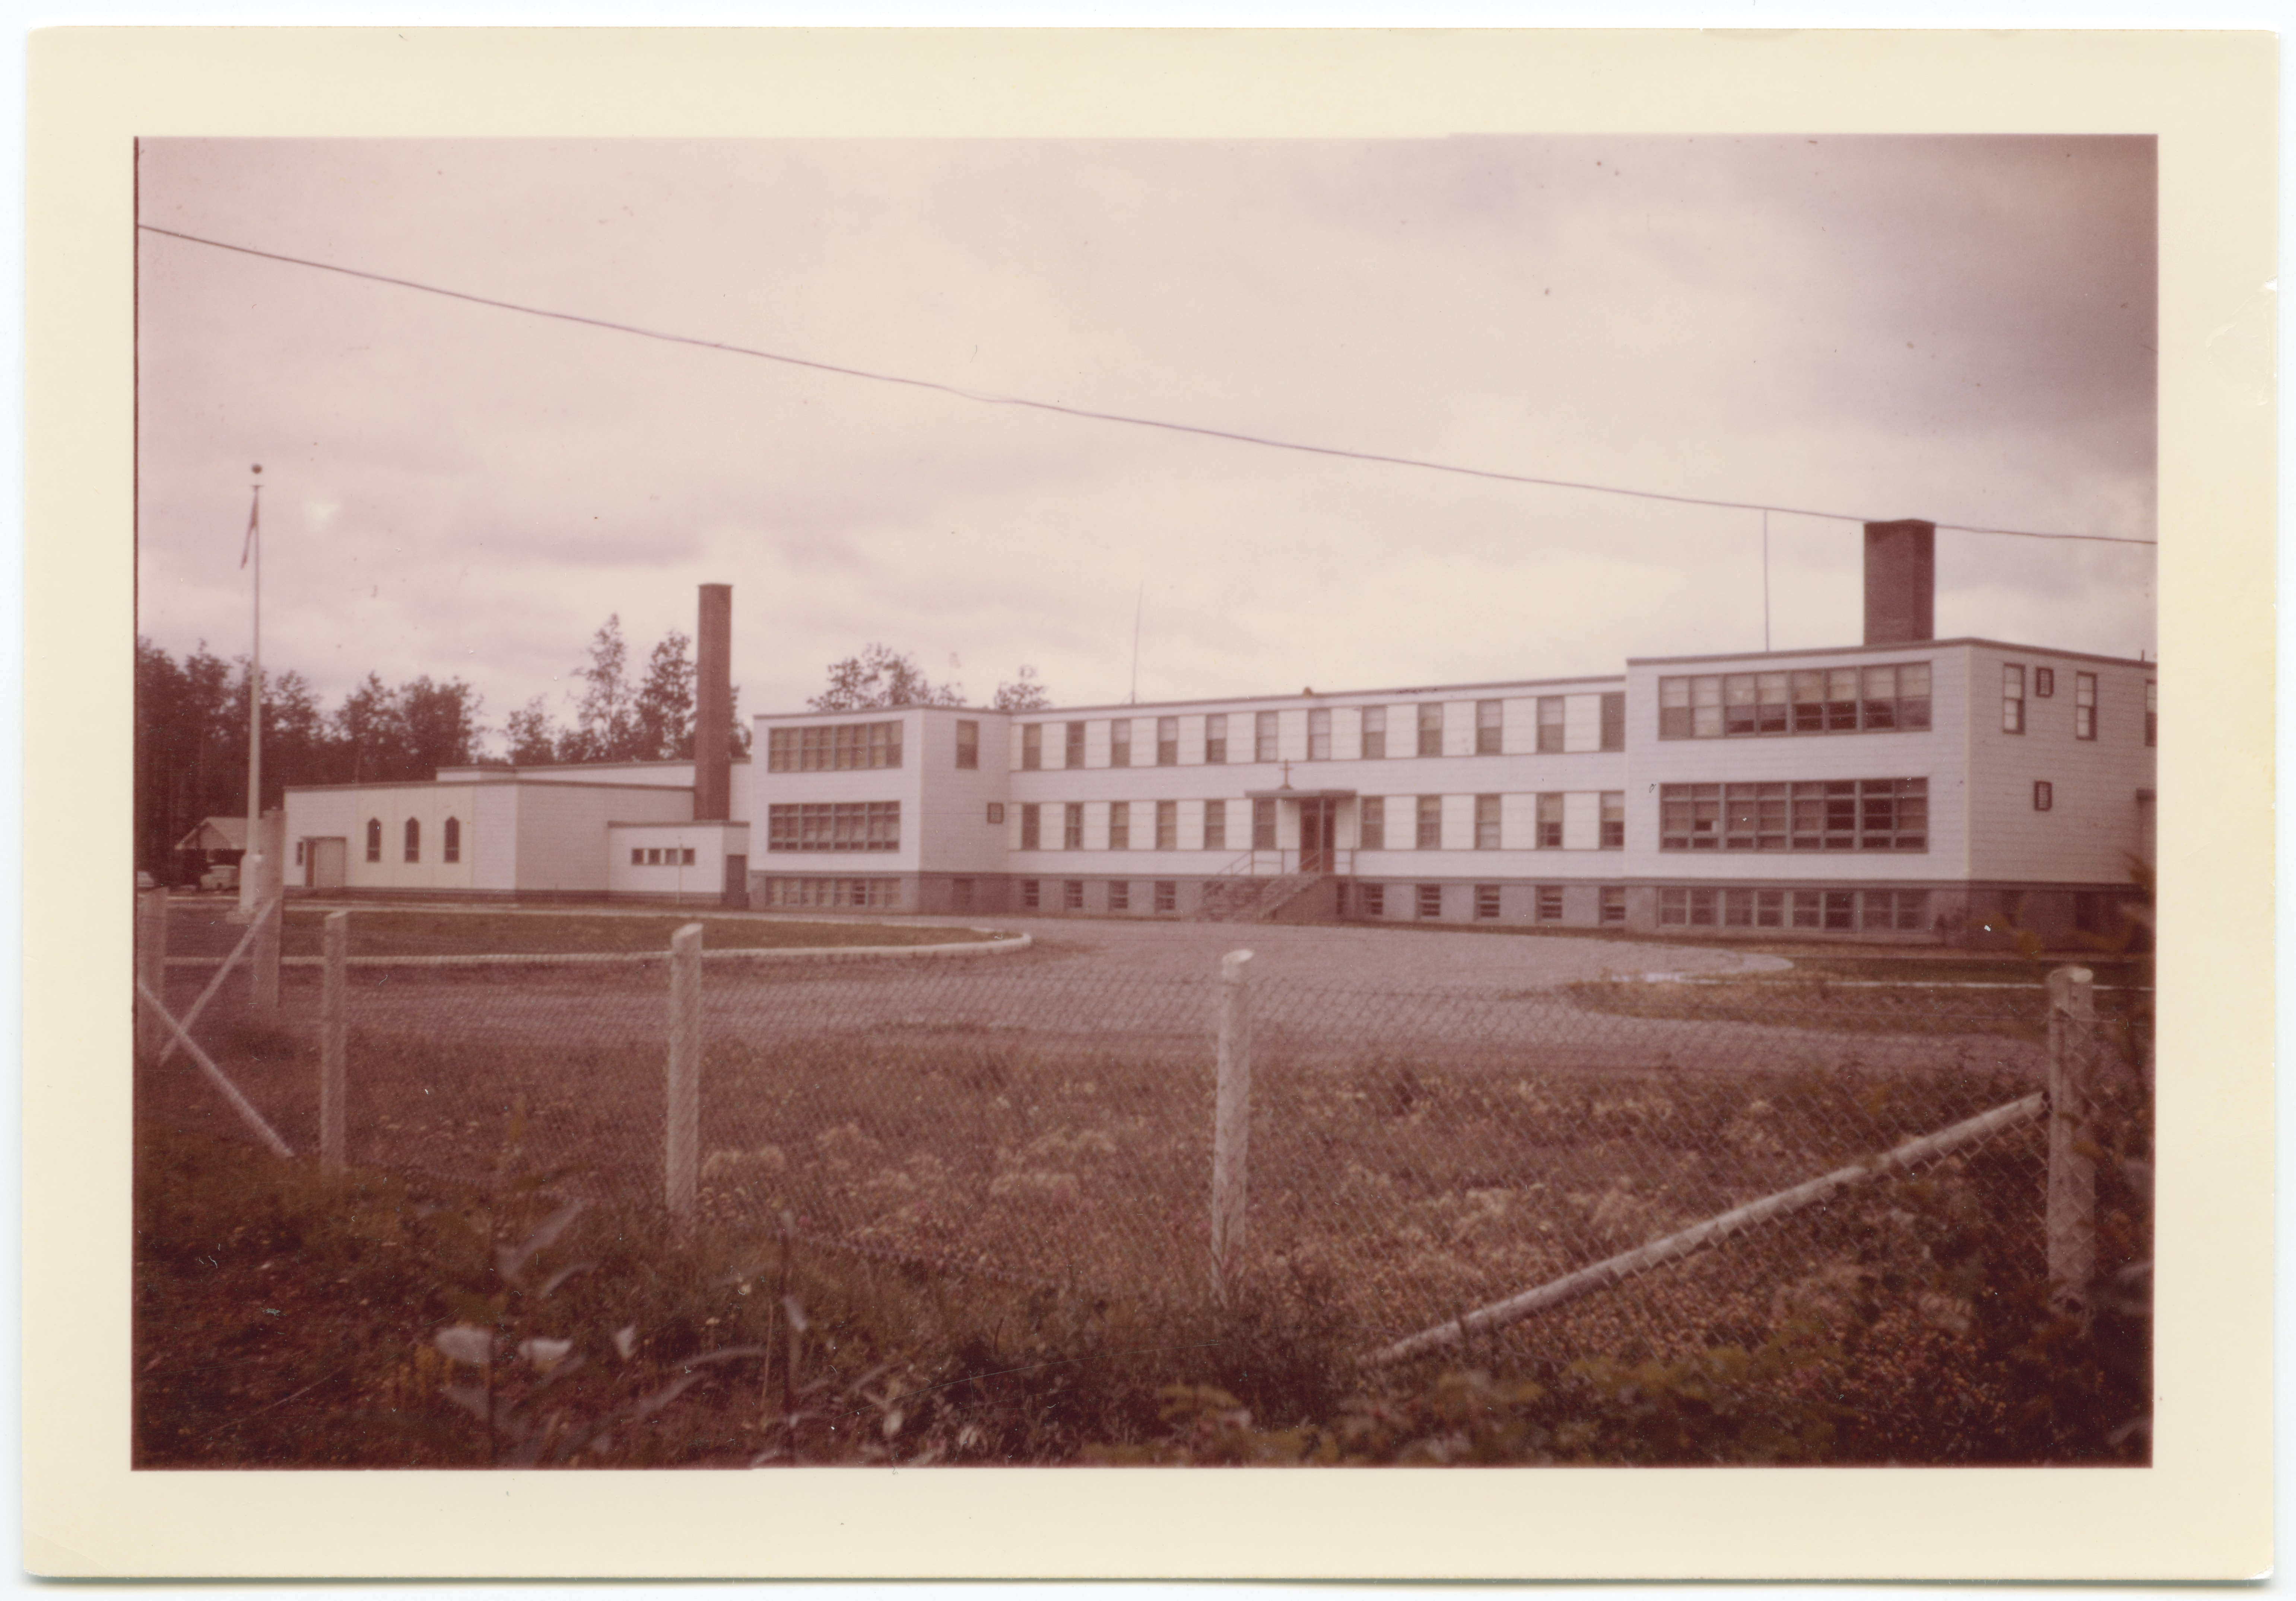 The Lower Post residential school, where Loverin's mother was a student, closed in 1975. Stories of abuse are common among the school's former students. (Yukon Archives)